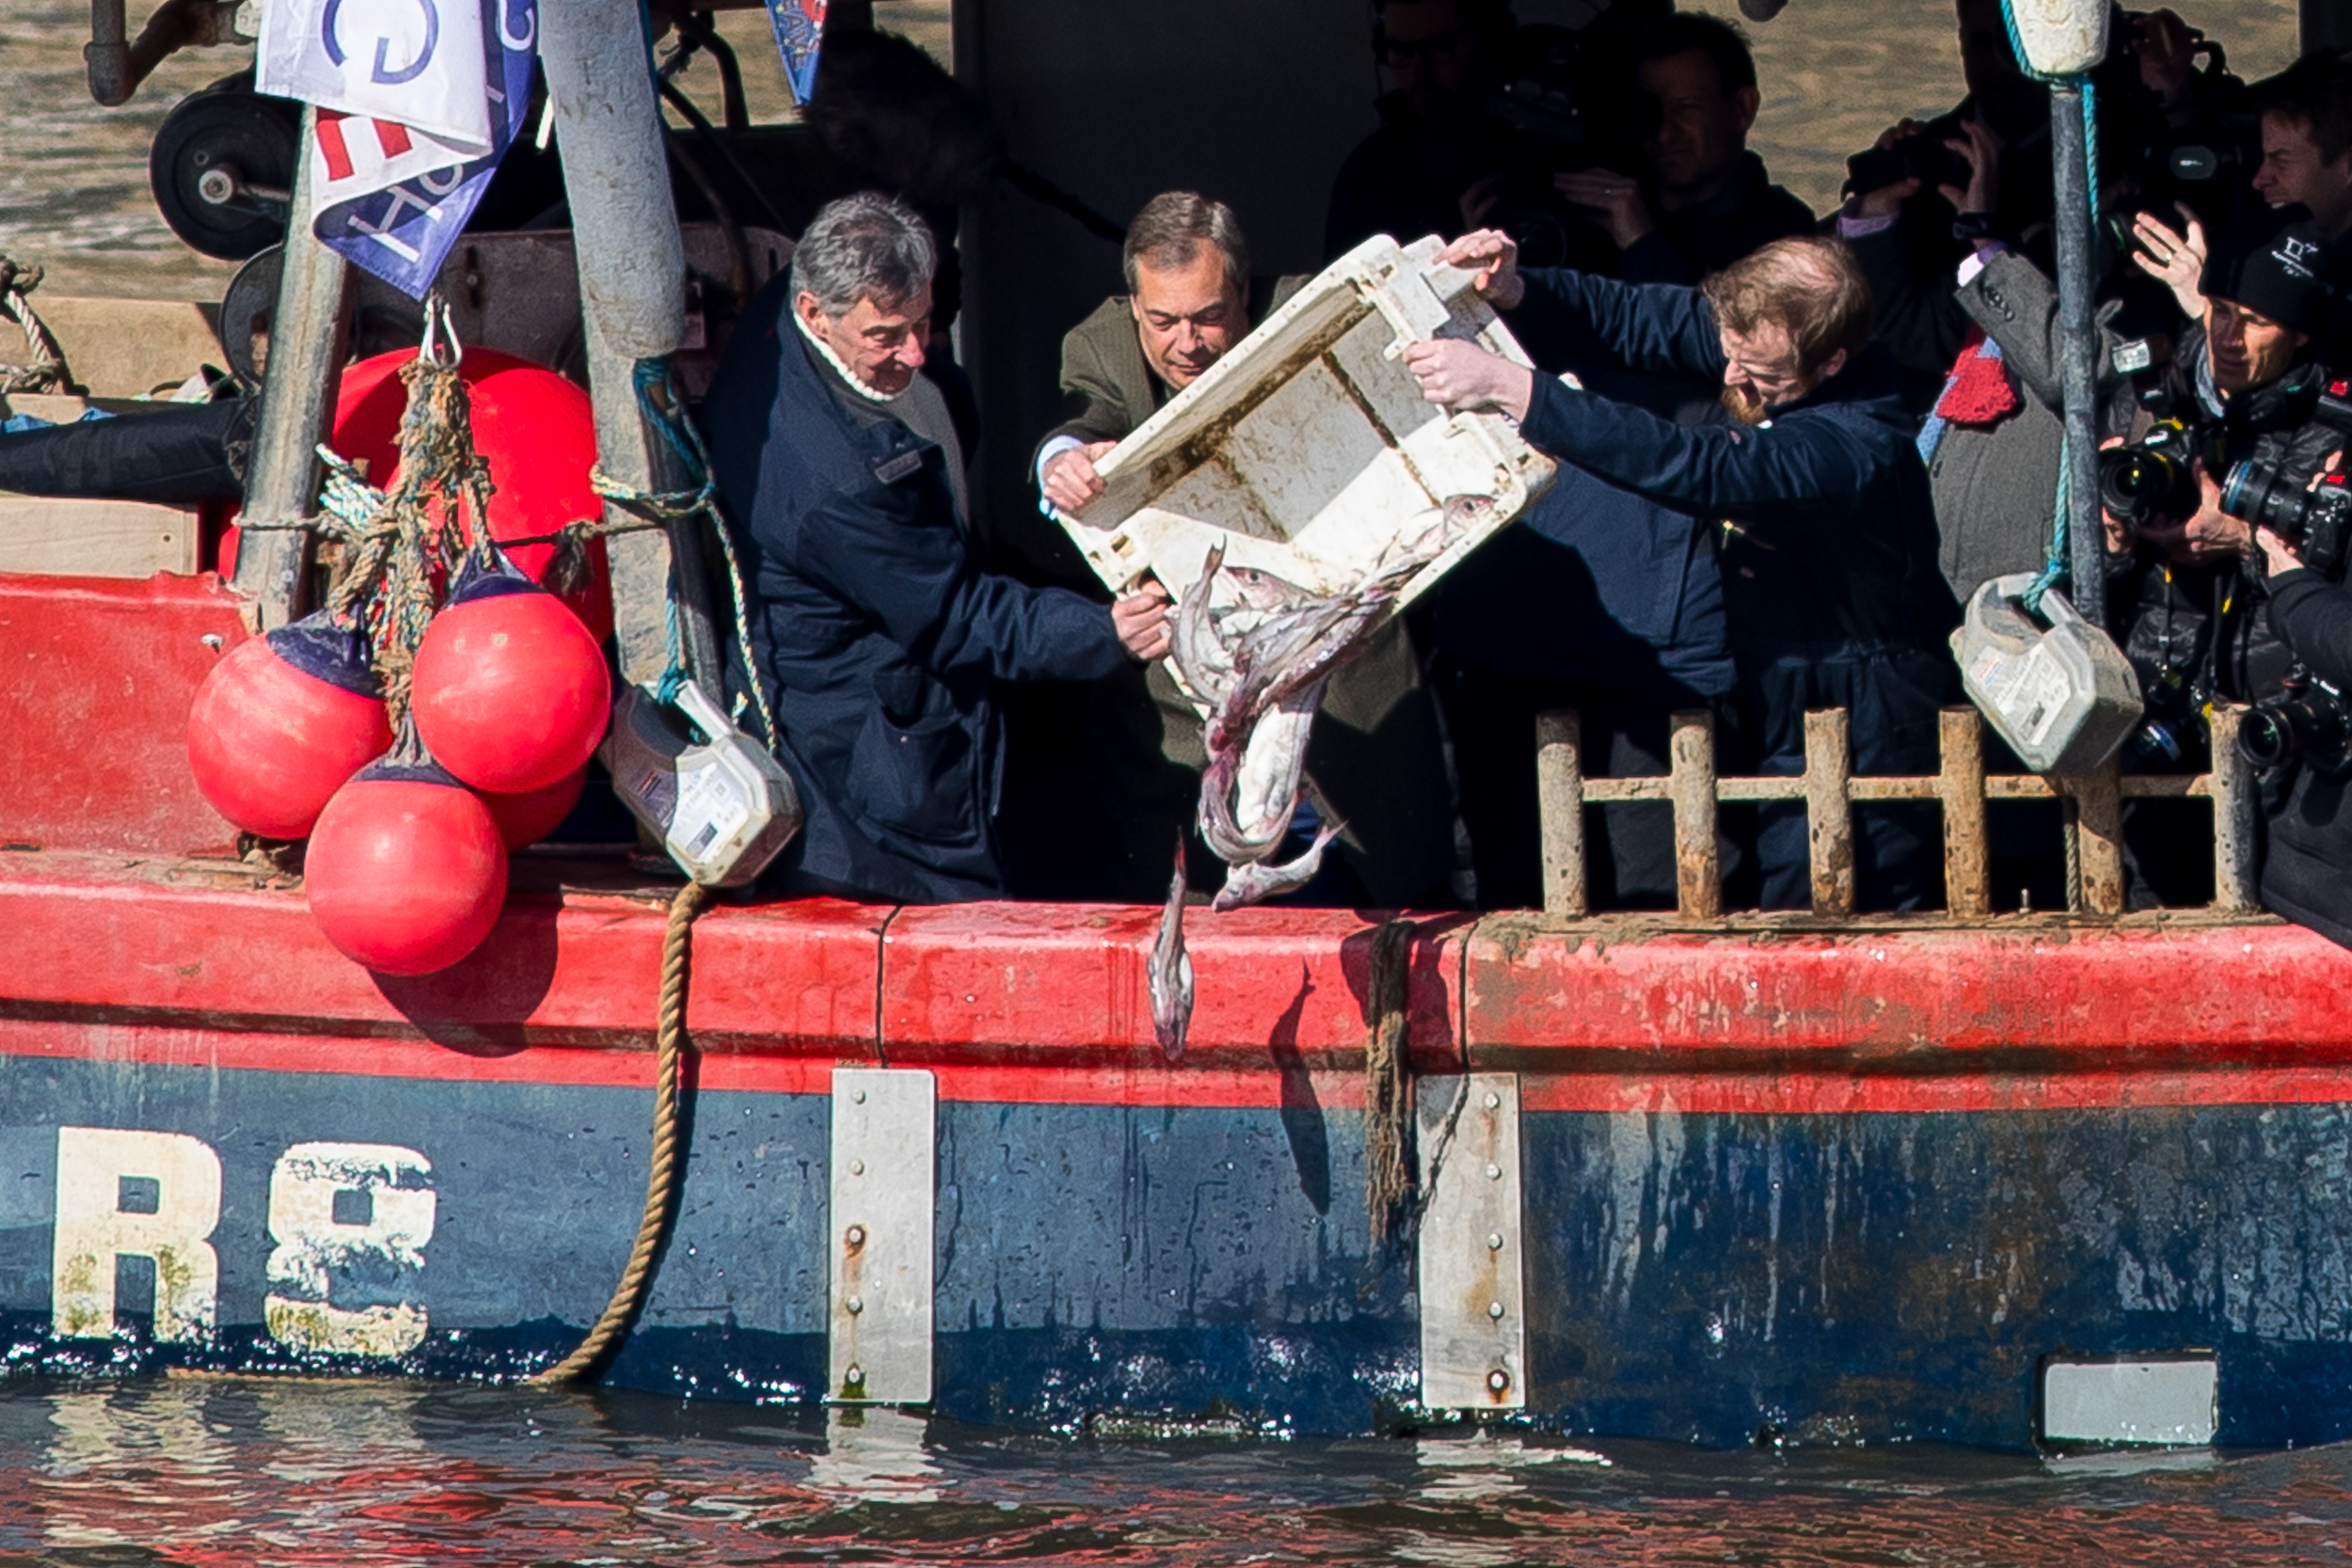 Nigel Farage (centre) joins campaigners from the 'Fisherman for Leave' group on a boat in the river Thames. They discarded dead fish into the river as a protest against yesterday's announcement that Britain will effectively continue to be involved in the EU's Common Fisheries Policy. The majority of fishermen voted for Britain to leave the EU. March 2018 - London, UK.